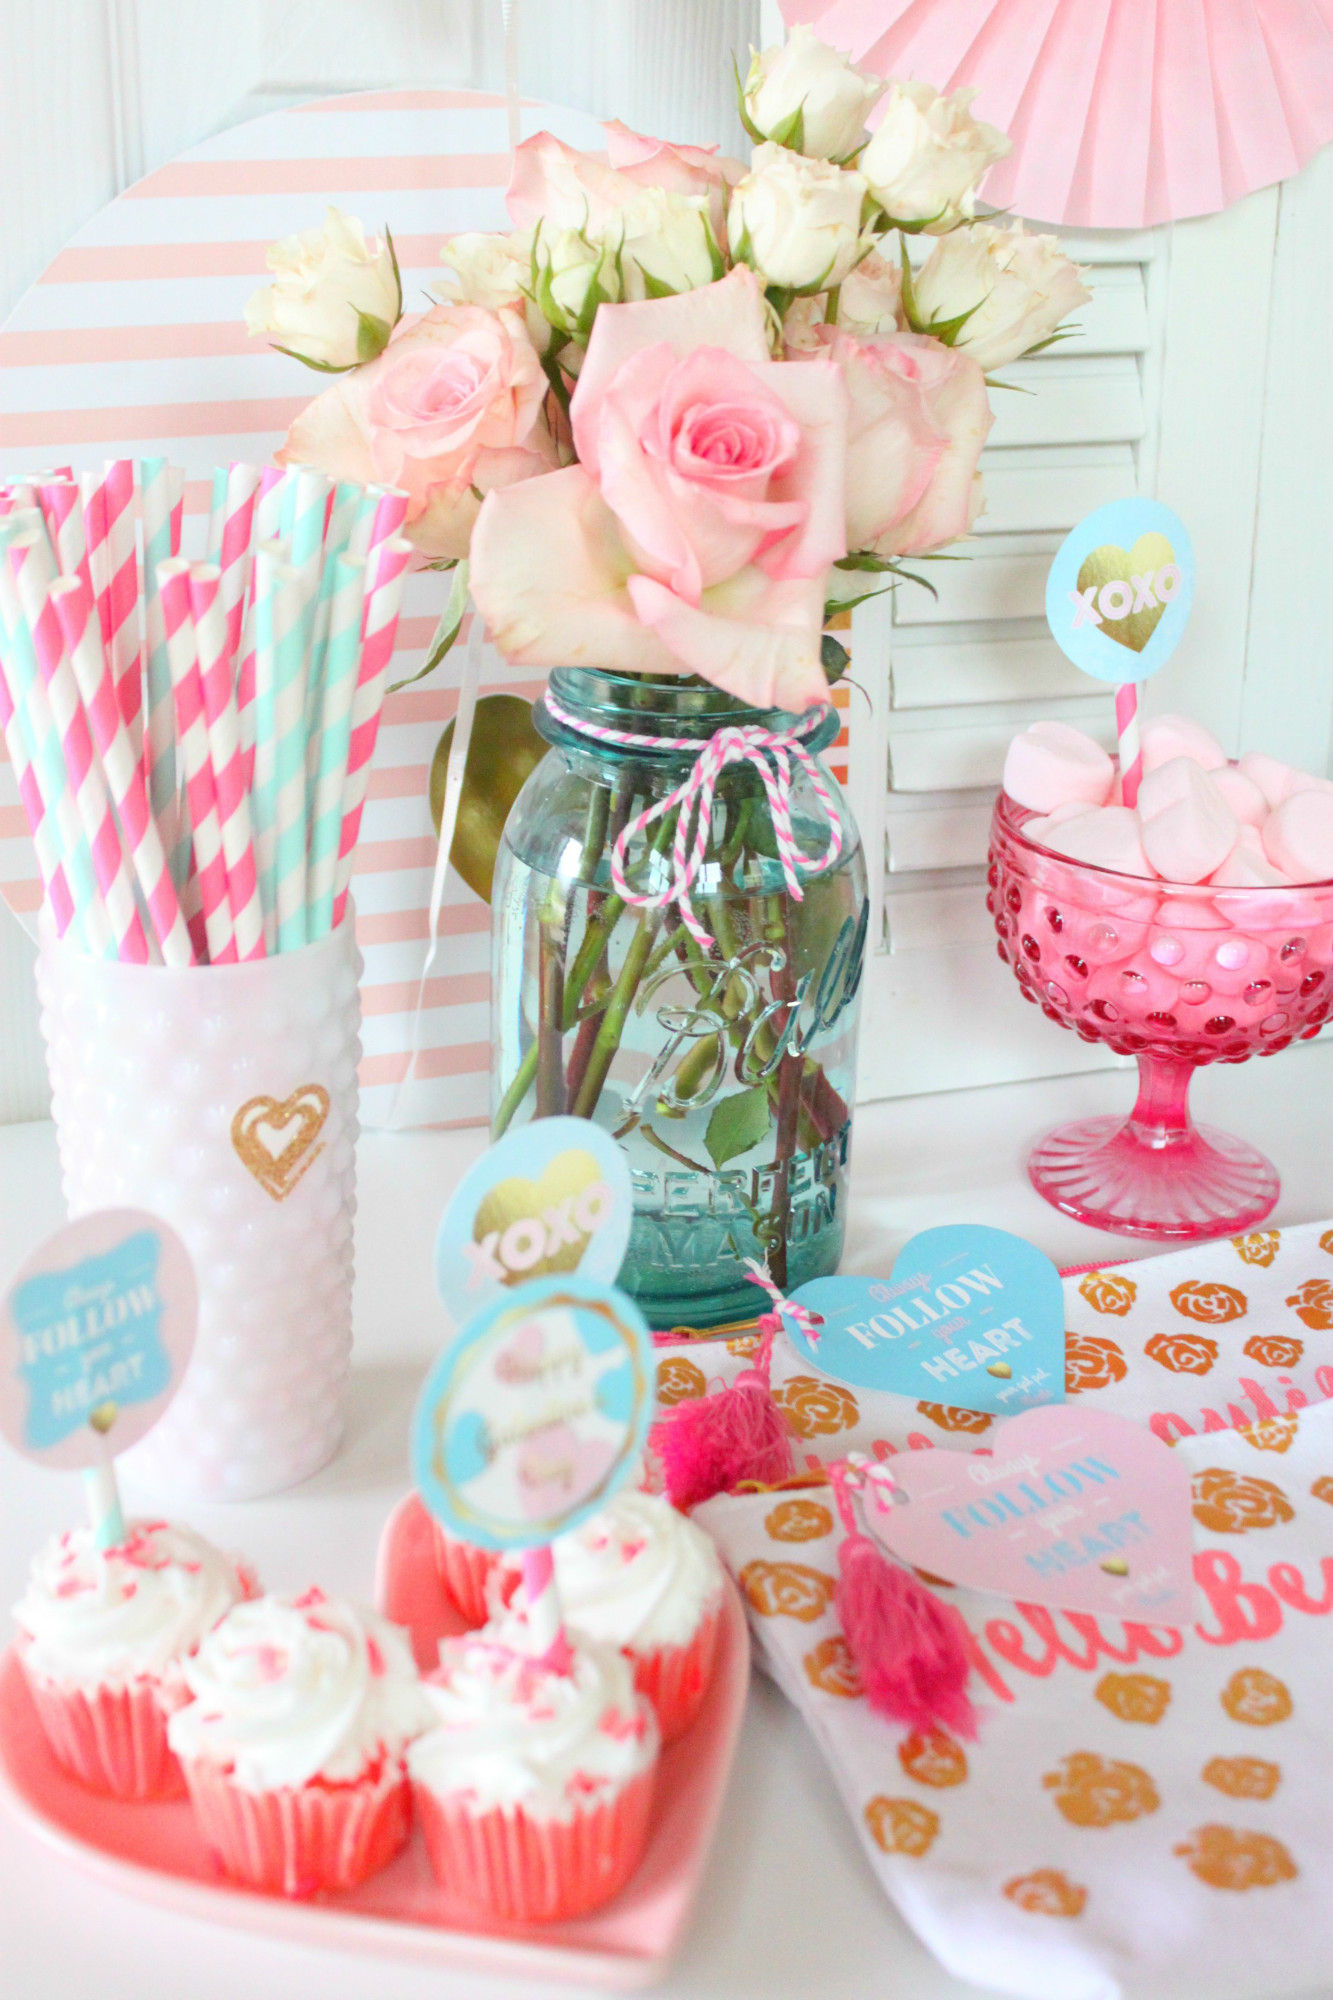 Cupcakes Flowers Straws Favors from Follow Your Heart Galentine's Day Party Dessert Table | Black Twine | The Party Porch